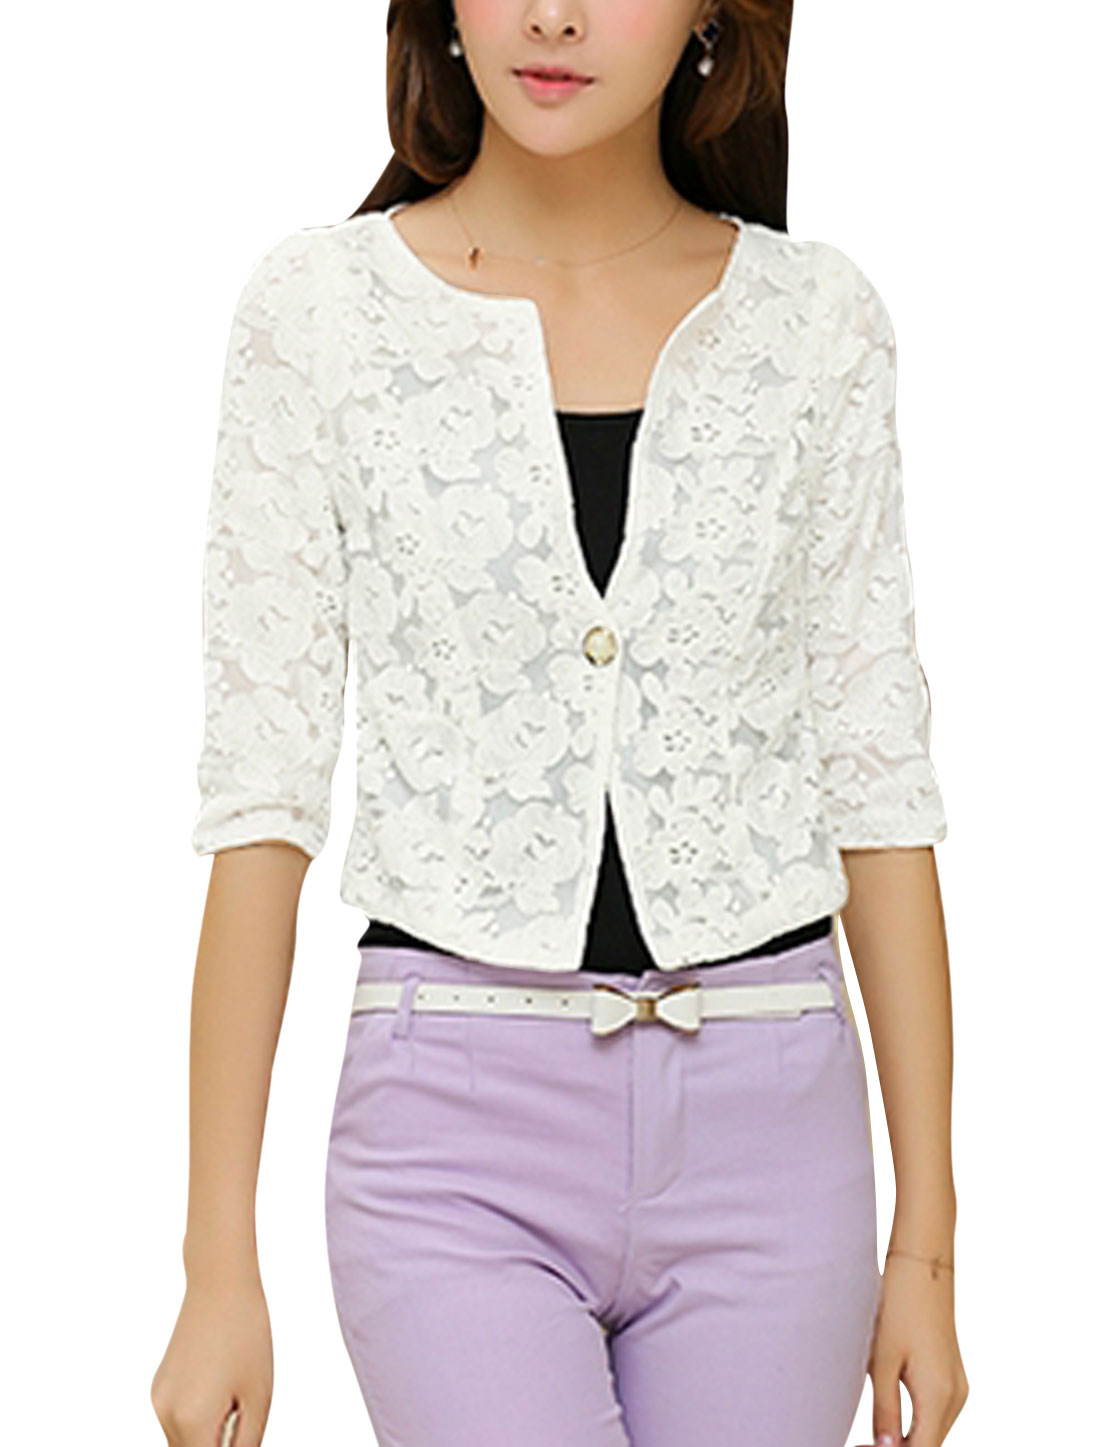 Women Half Sleeves Chiffon Lined Flower Embroidery Cropped Lace Blazer White M